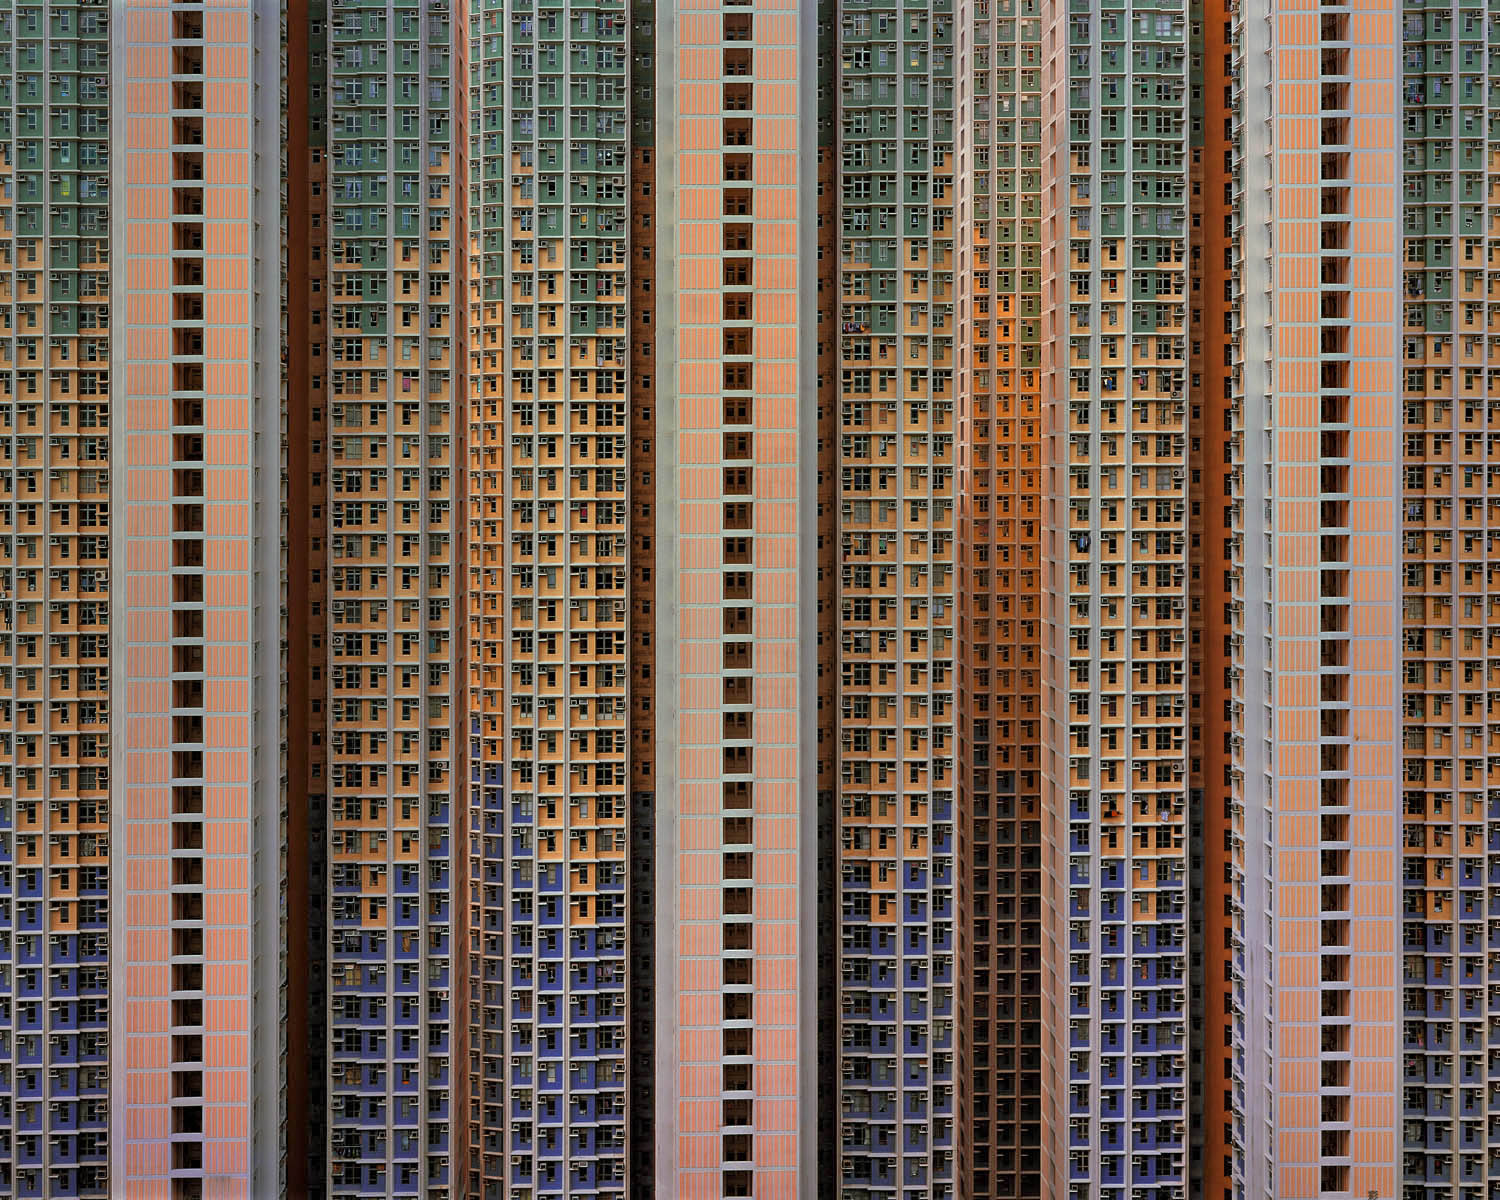 "'Architecture of Density #91"", Hong Kong 2006, 40 x 52"" Edition 9 of 9 (last one available at Blue Lotus Gallery only)"